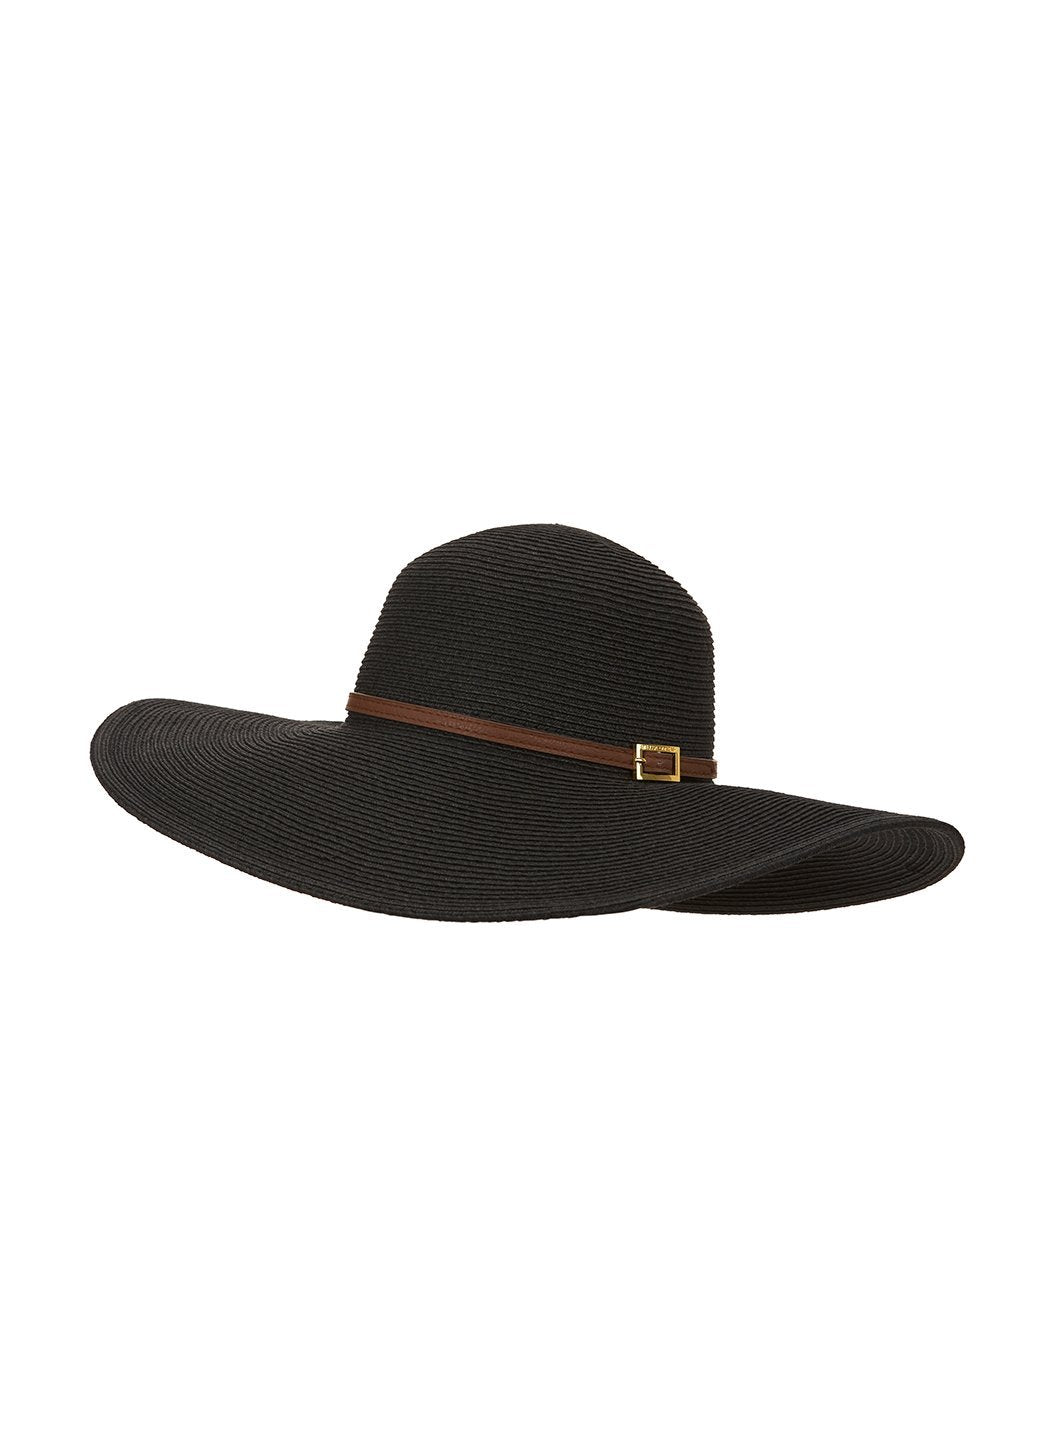 jemima wide brim beach hat black 2019